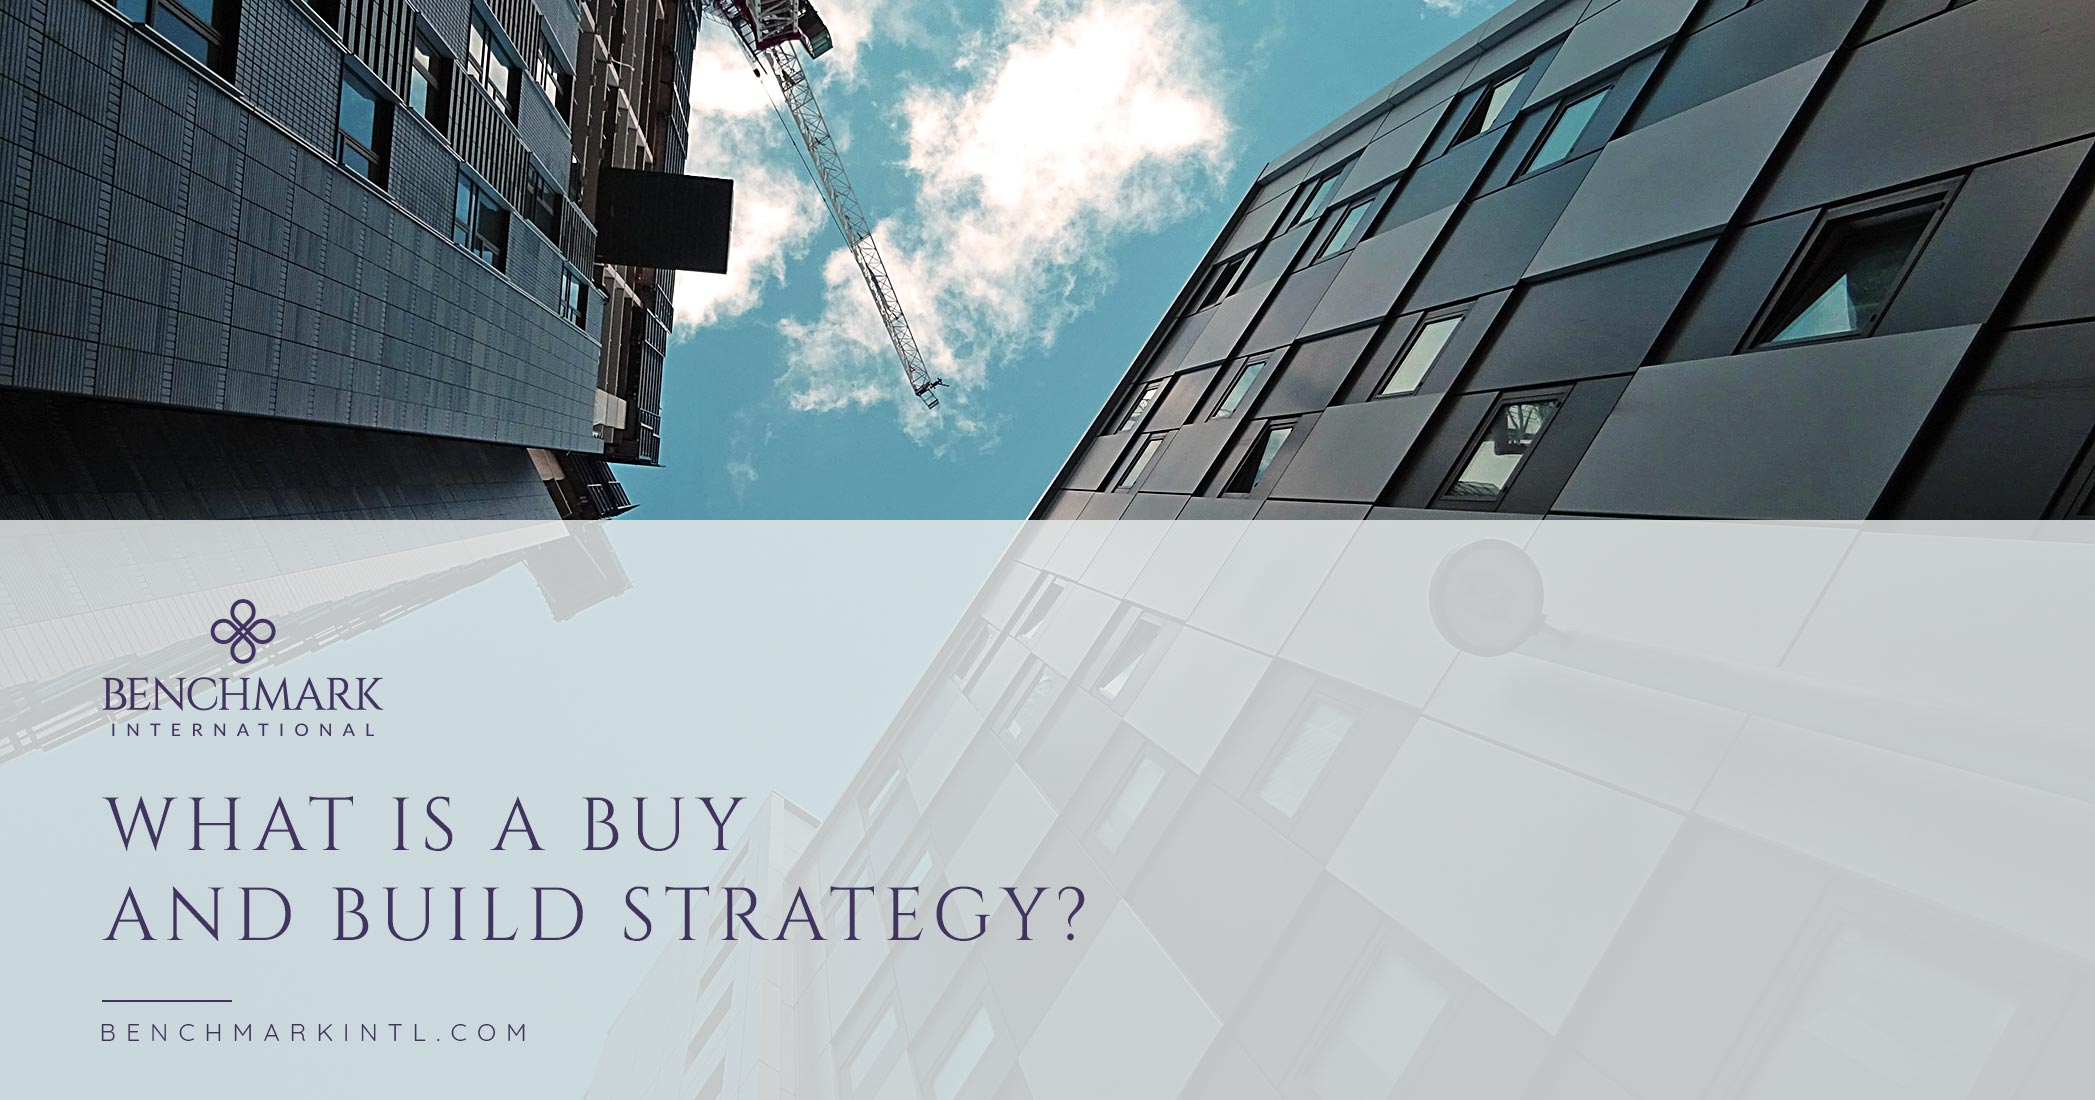 What Is A Buy and Build Strategy?